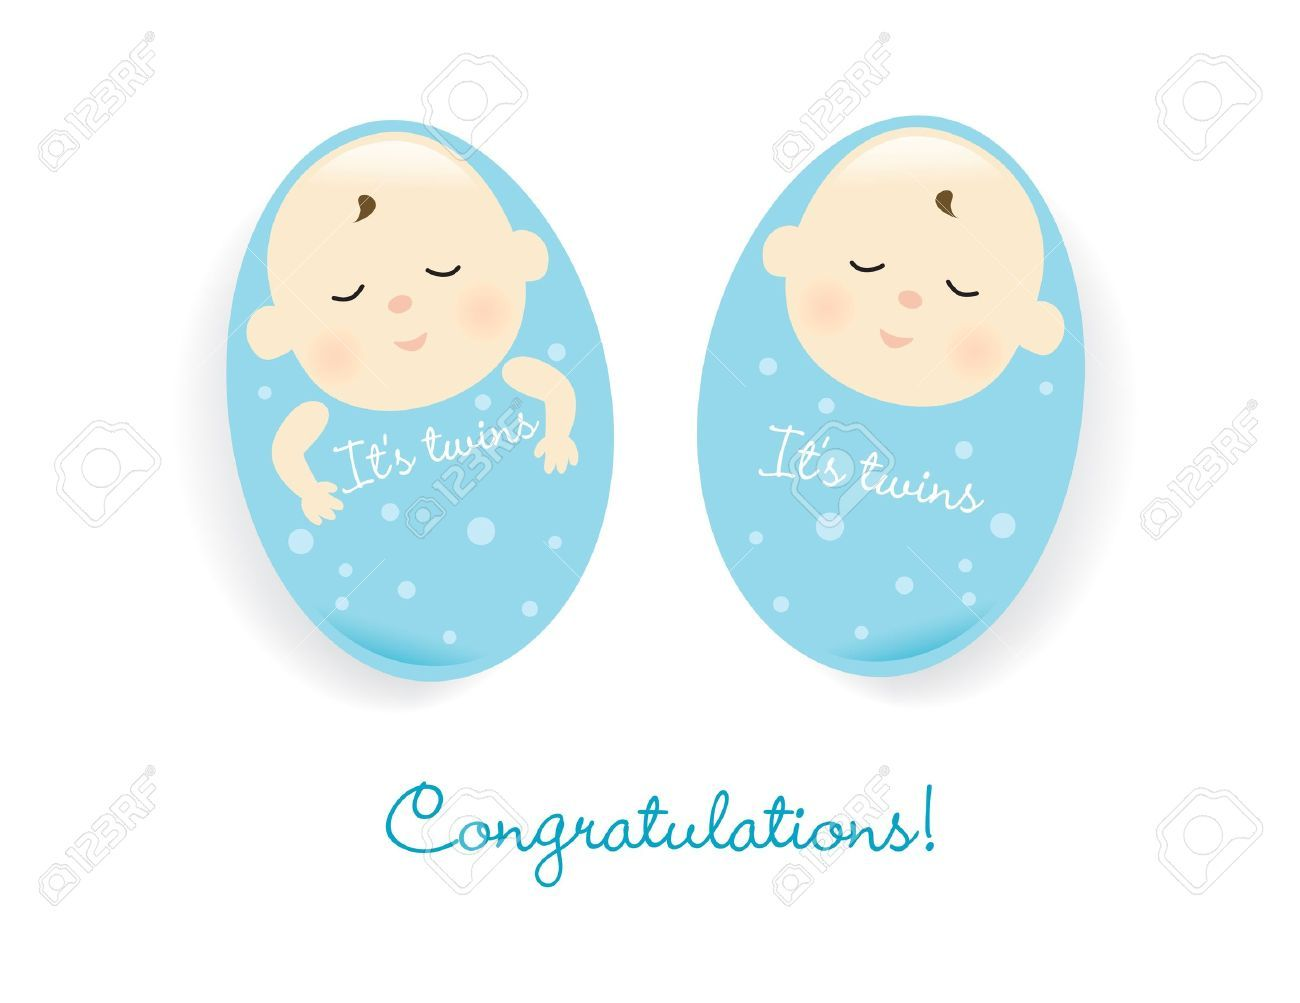 Twin baby boys clipart 4 » Clipart Portal.